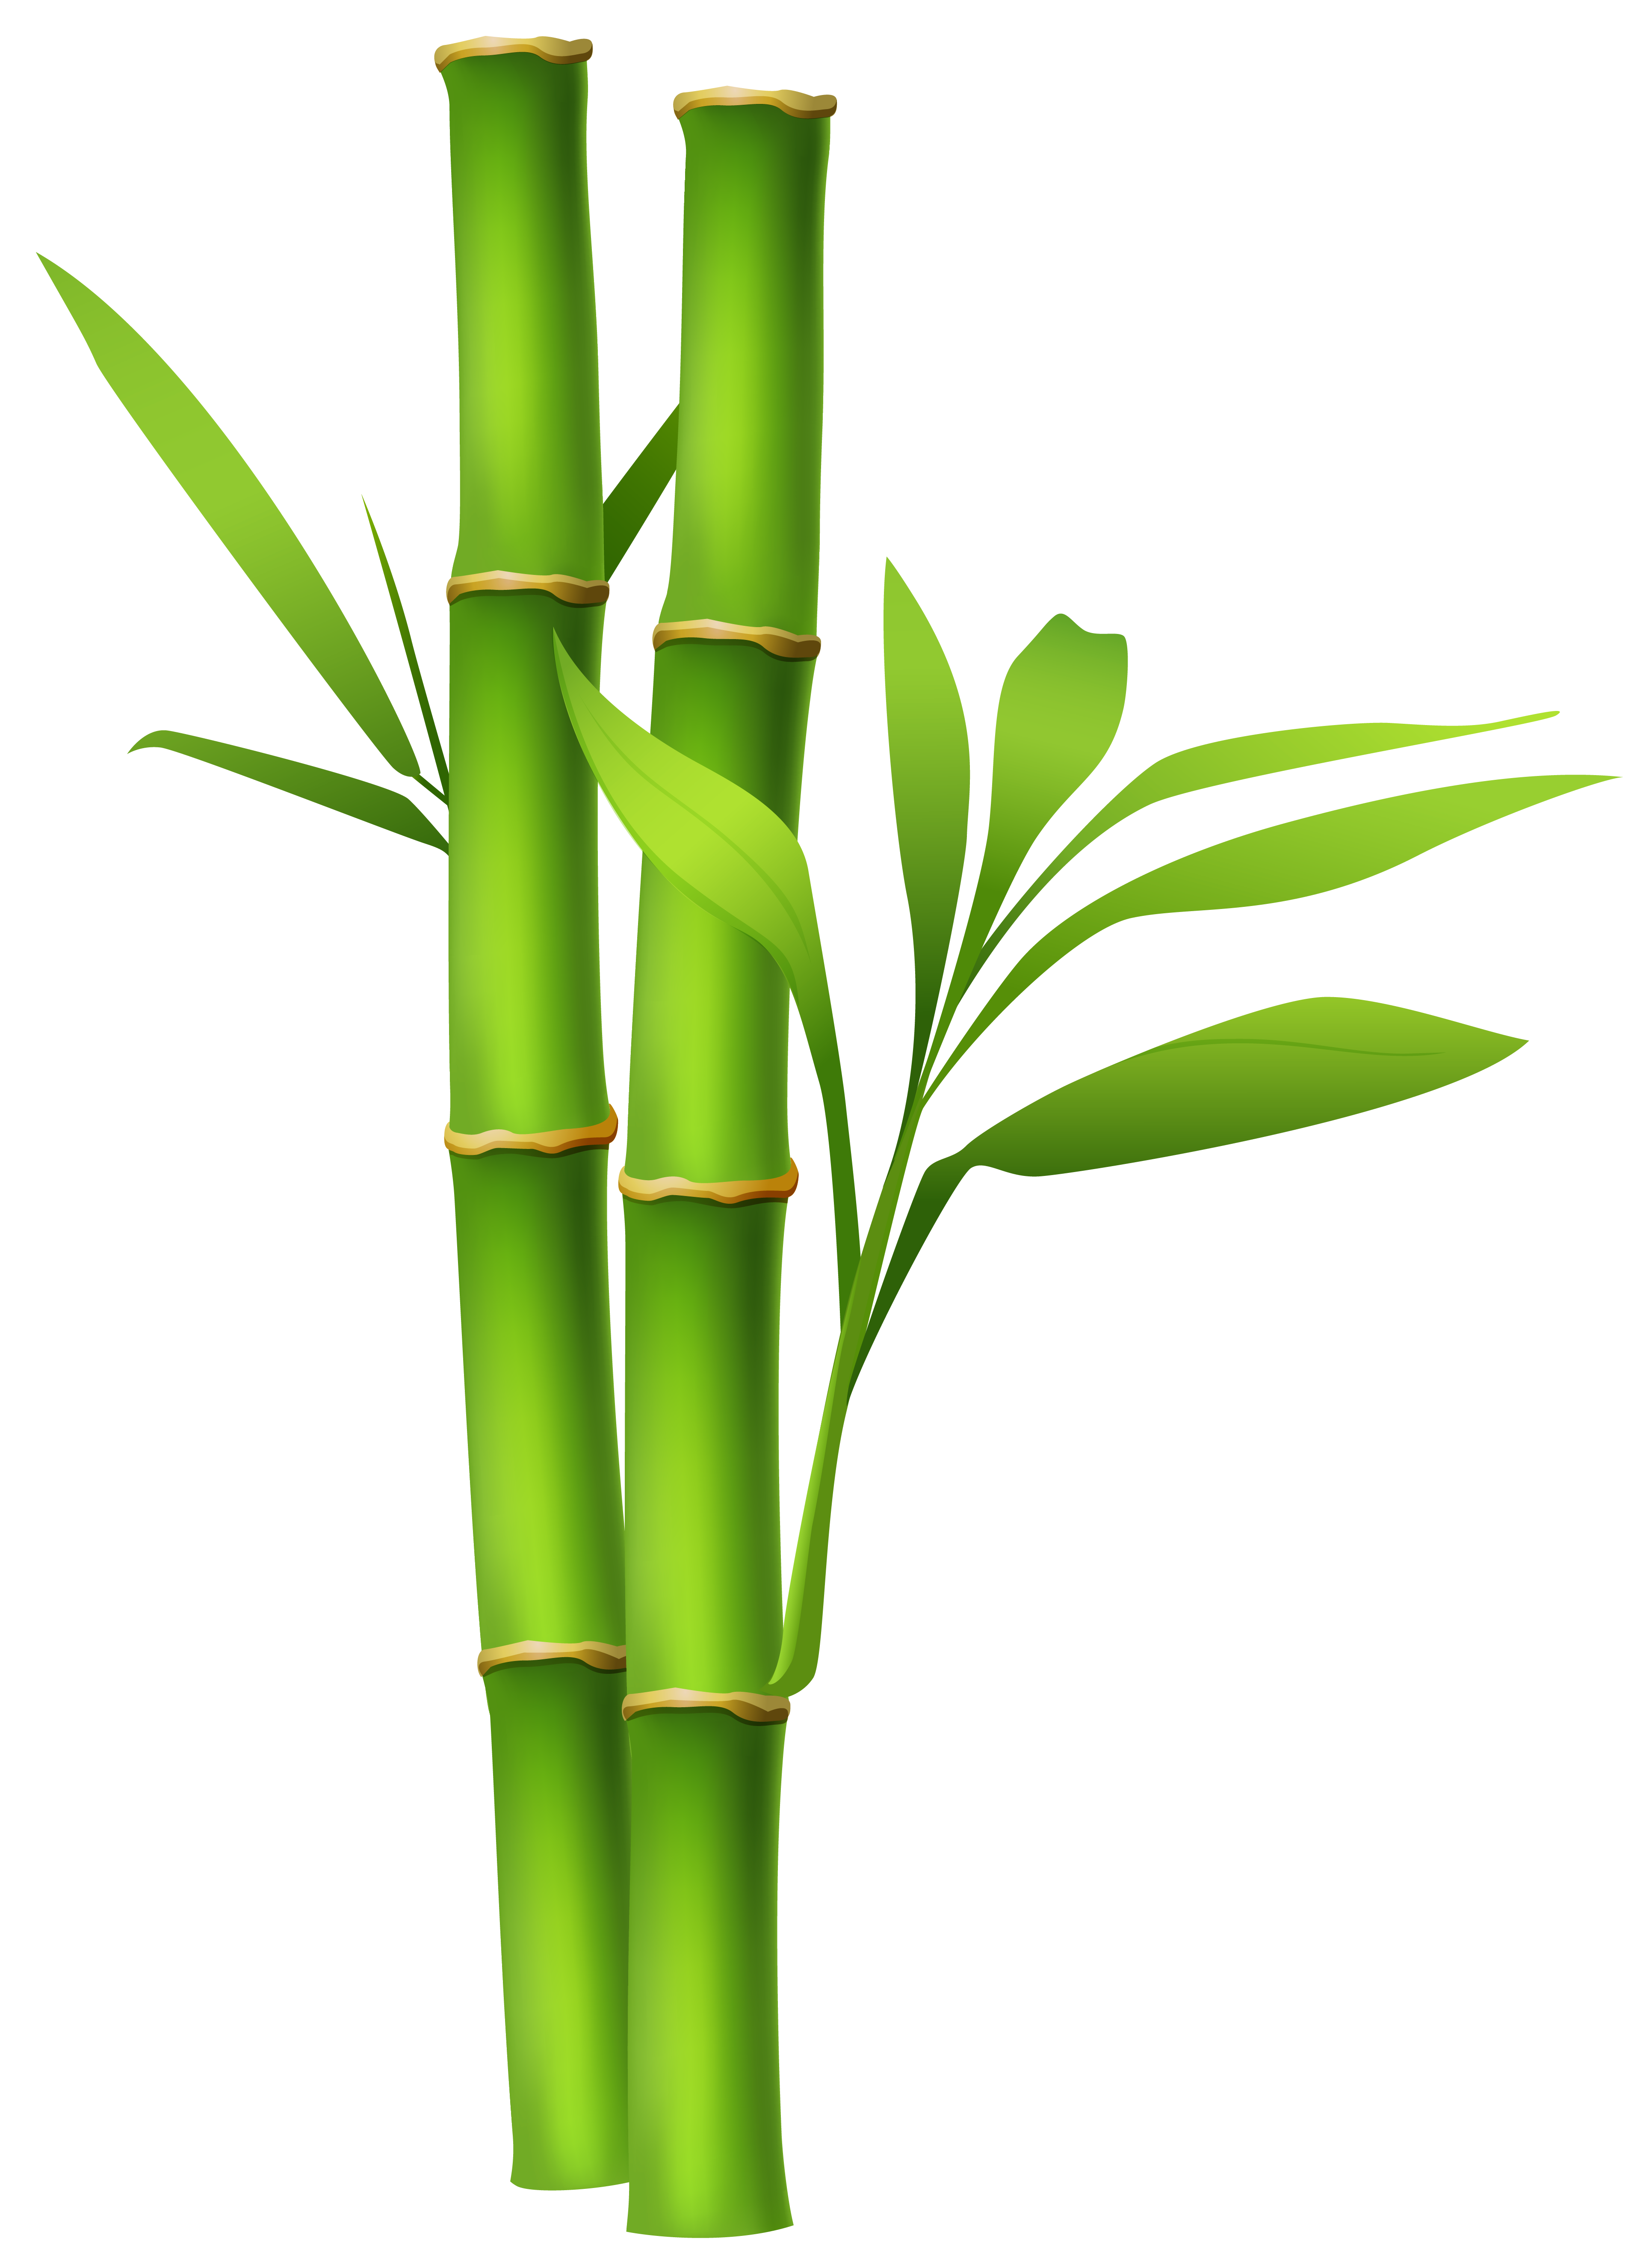 3849x5302 Bamboo Png Imageu200b Gallery Yopriceville